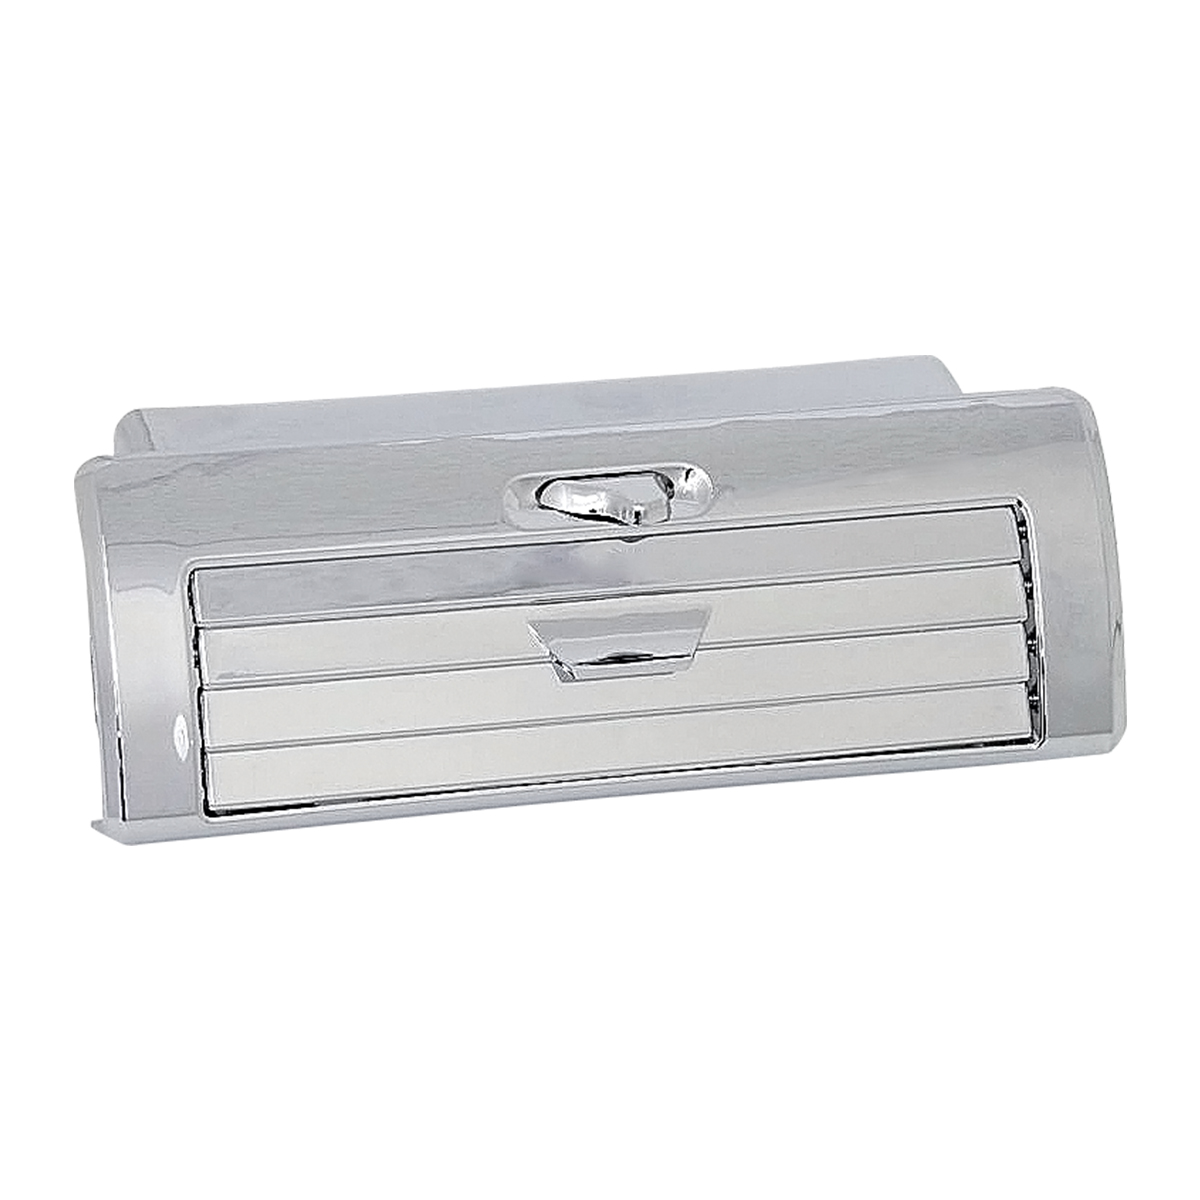 67792 Dash A/C Vent for Freightliner Cascadia